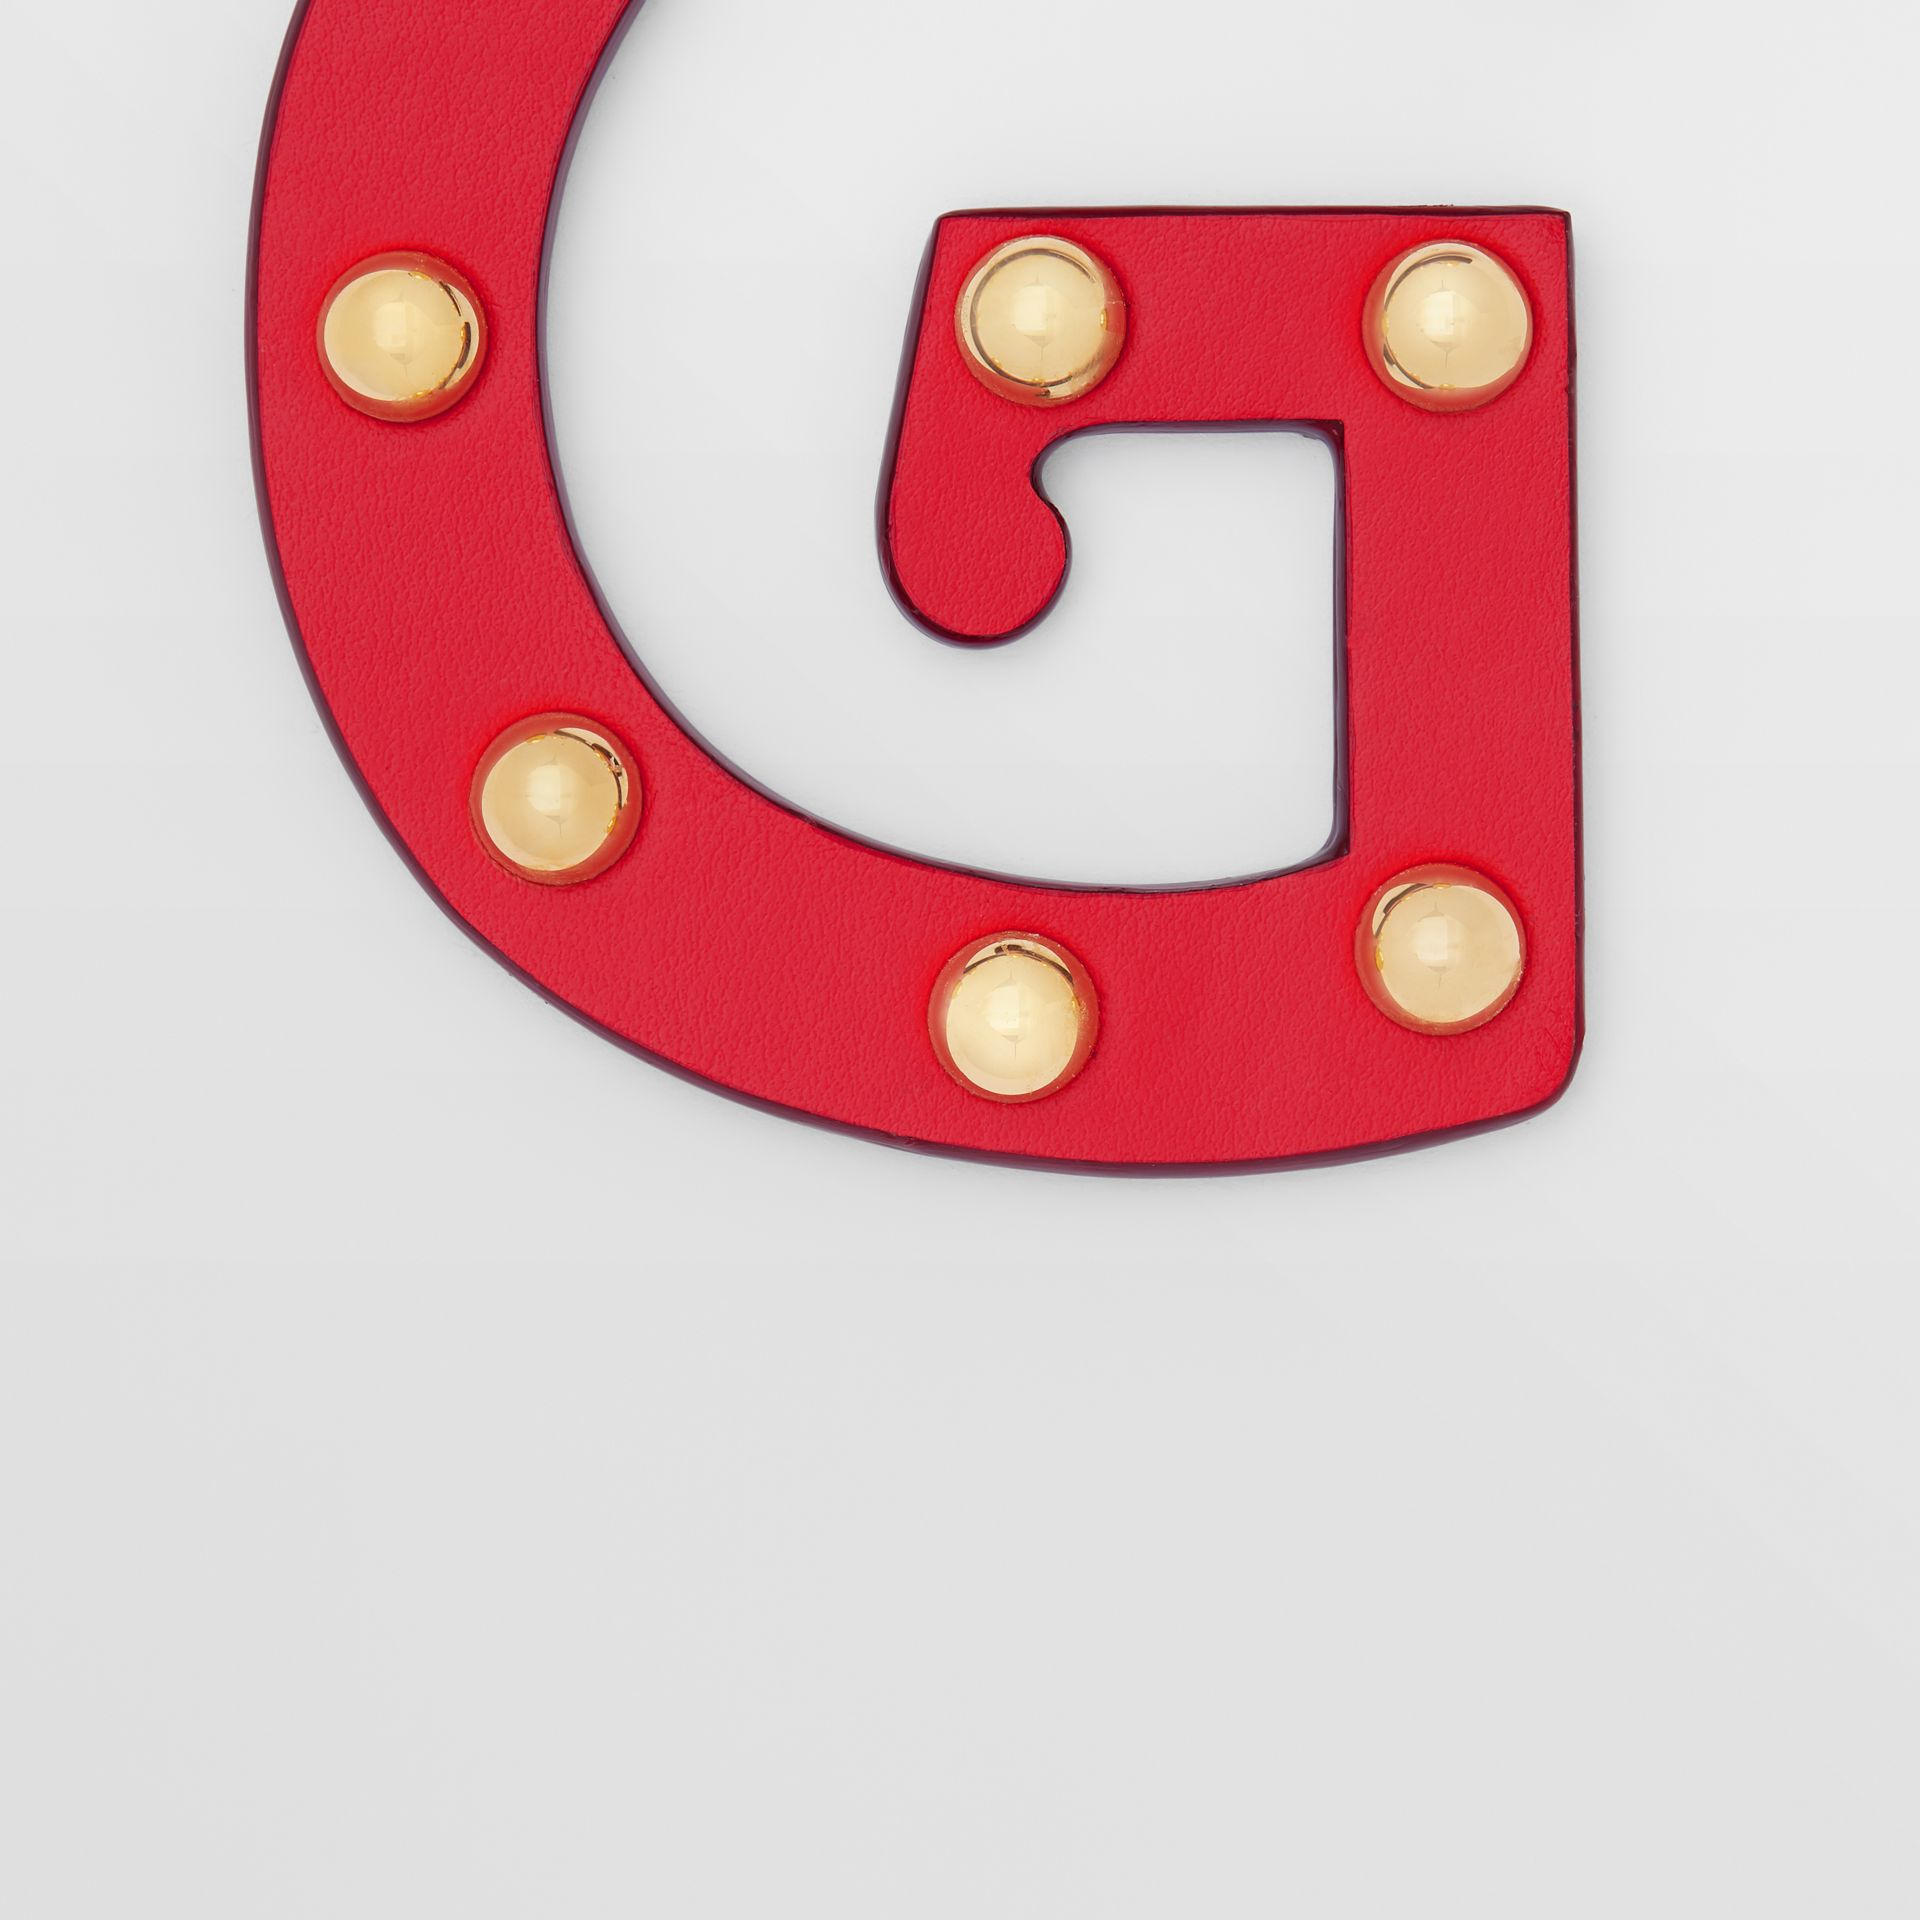 'G' Studded Leather Alphabet Charm in Red/light Gold - Women | Burberry - gallery image 1